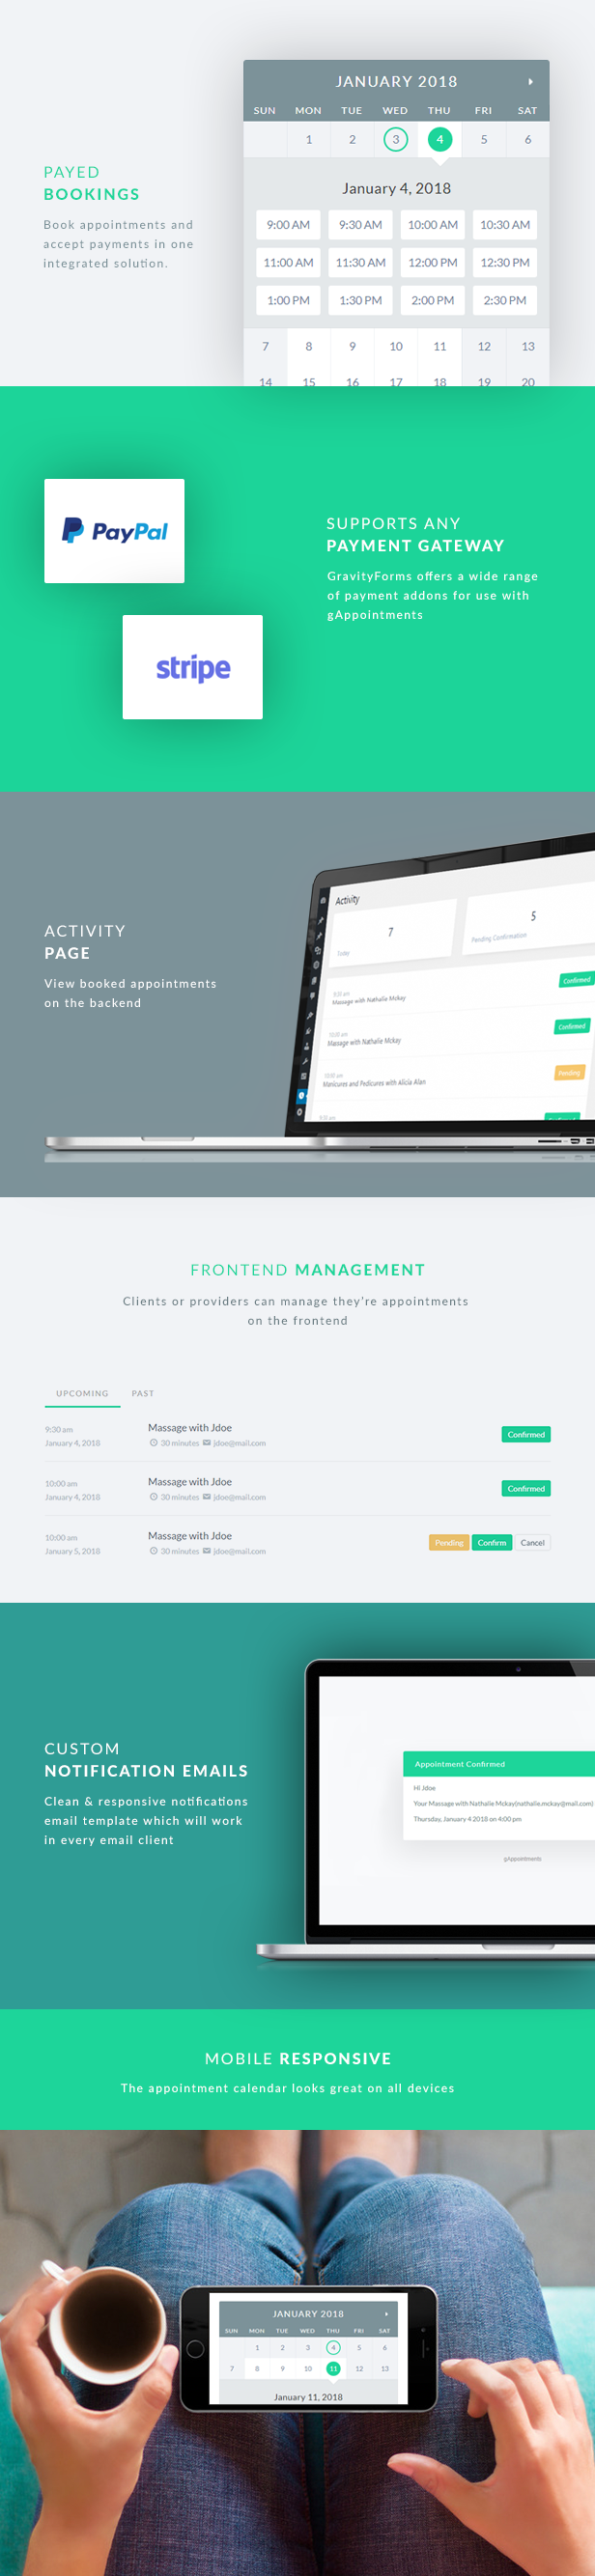 gAppointments - Appointment booking addon for Gravity Forms - 1